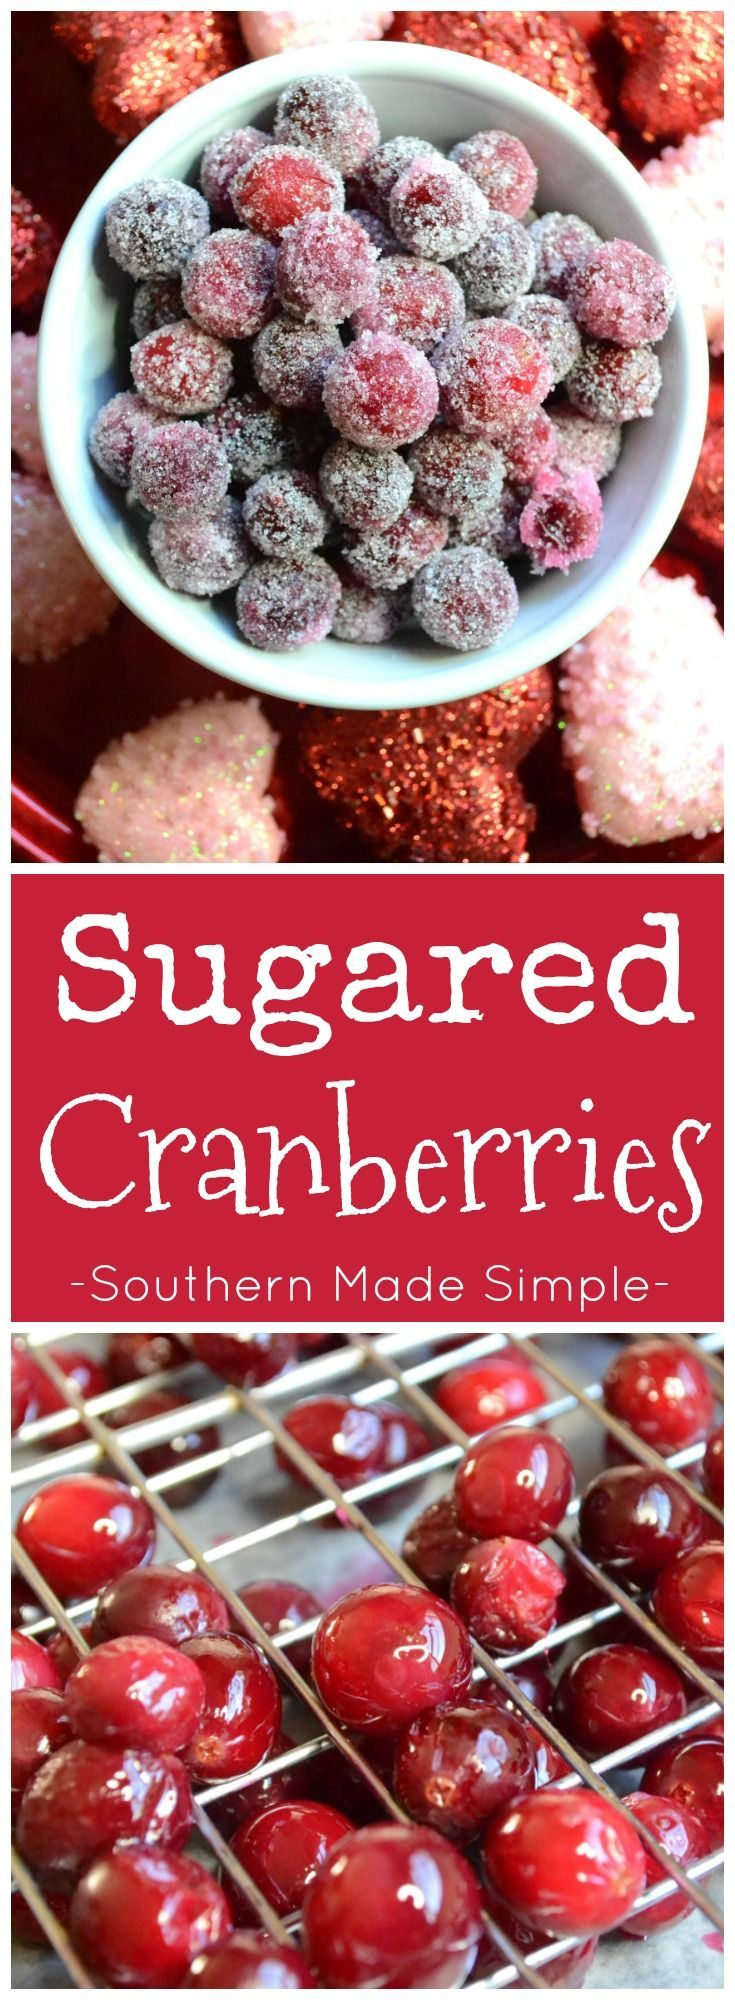 Sugared cranberries are a sweet treat to make during the holidays, and they're a great way to use up leftover cranberries!